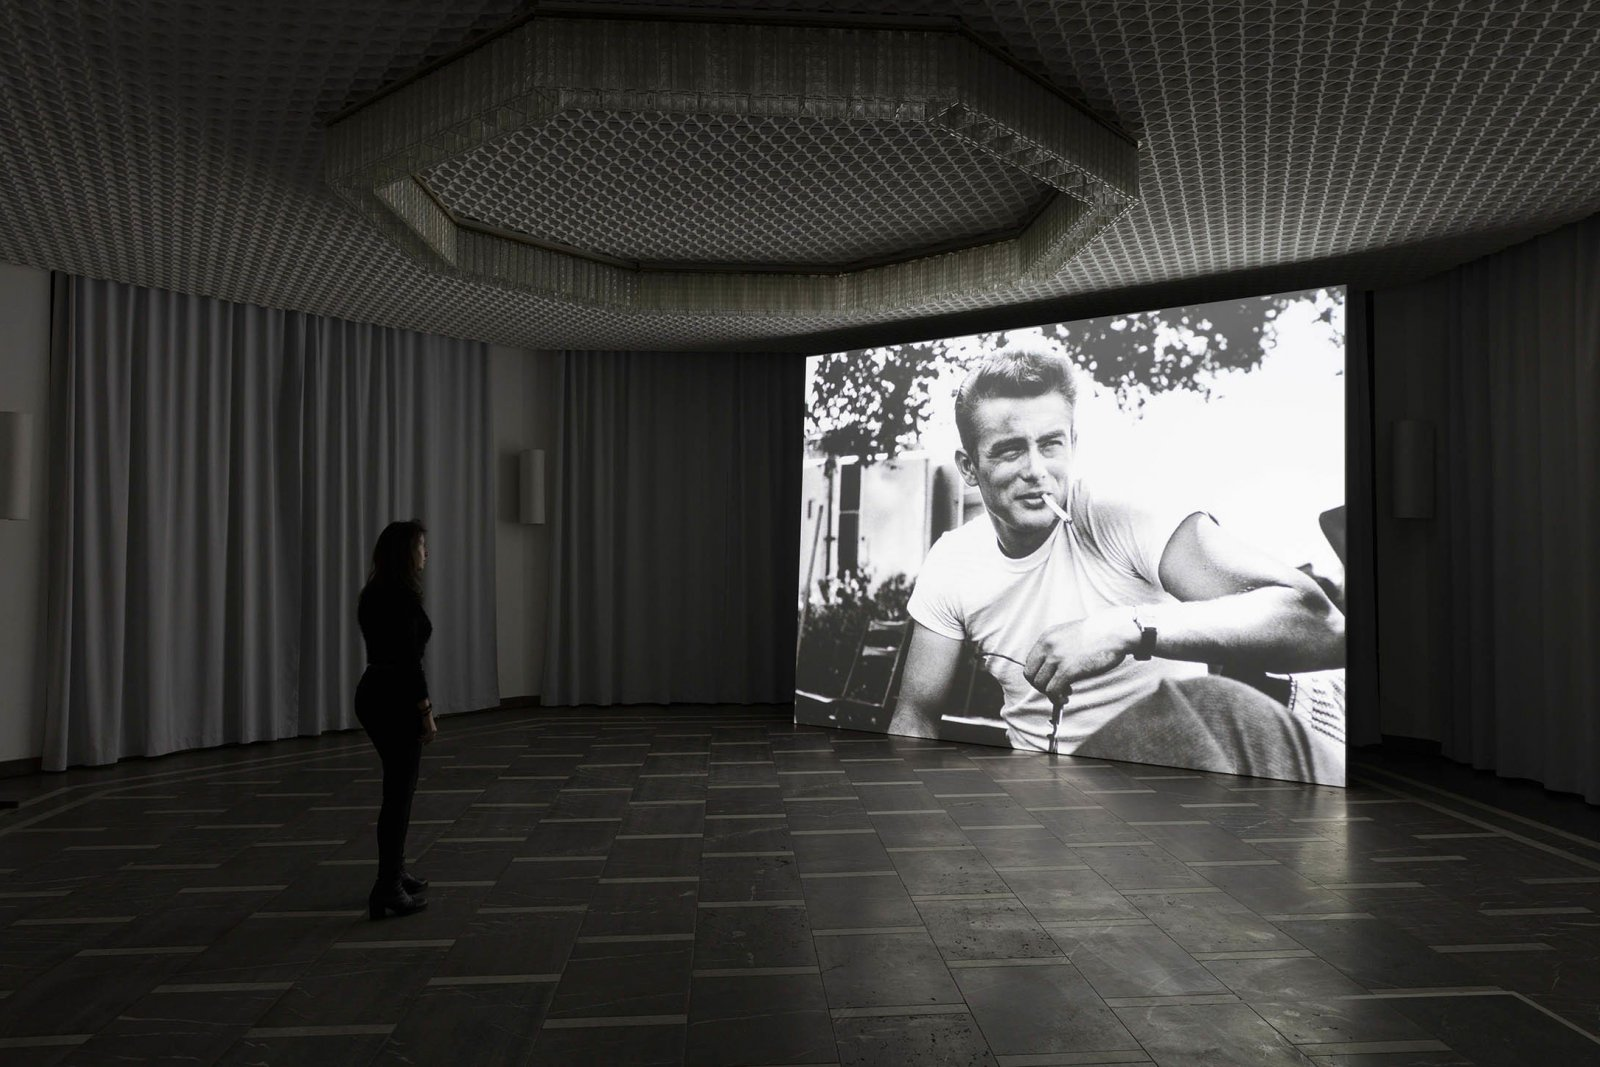 Geoffrey Farmer,Look in my face; my name is Might-have-been; I am also called No-more, Too-late, Farewell, 2010–2014, computer-generated algorithmic montage sequence, dimensions variable. Installation view,The Care With Which The Rain Is Wrong, Schinkel Pavillon, Berlin, Germany, 2017